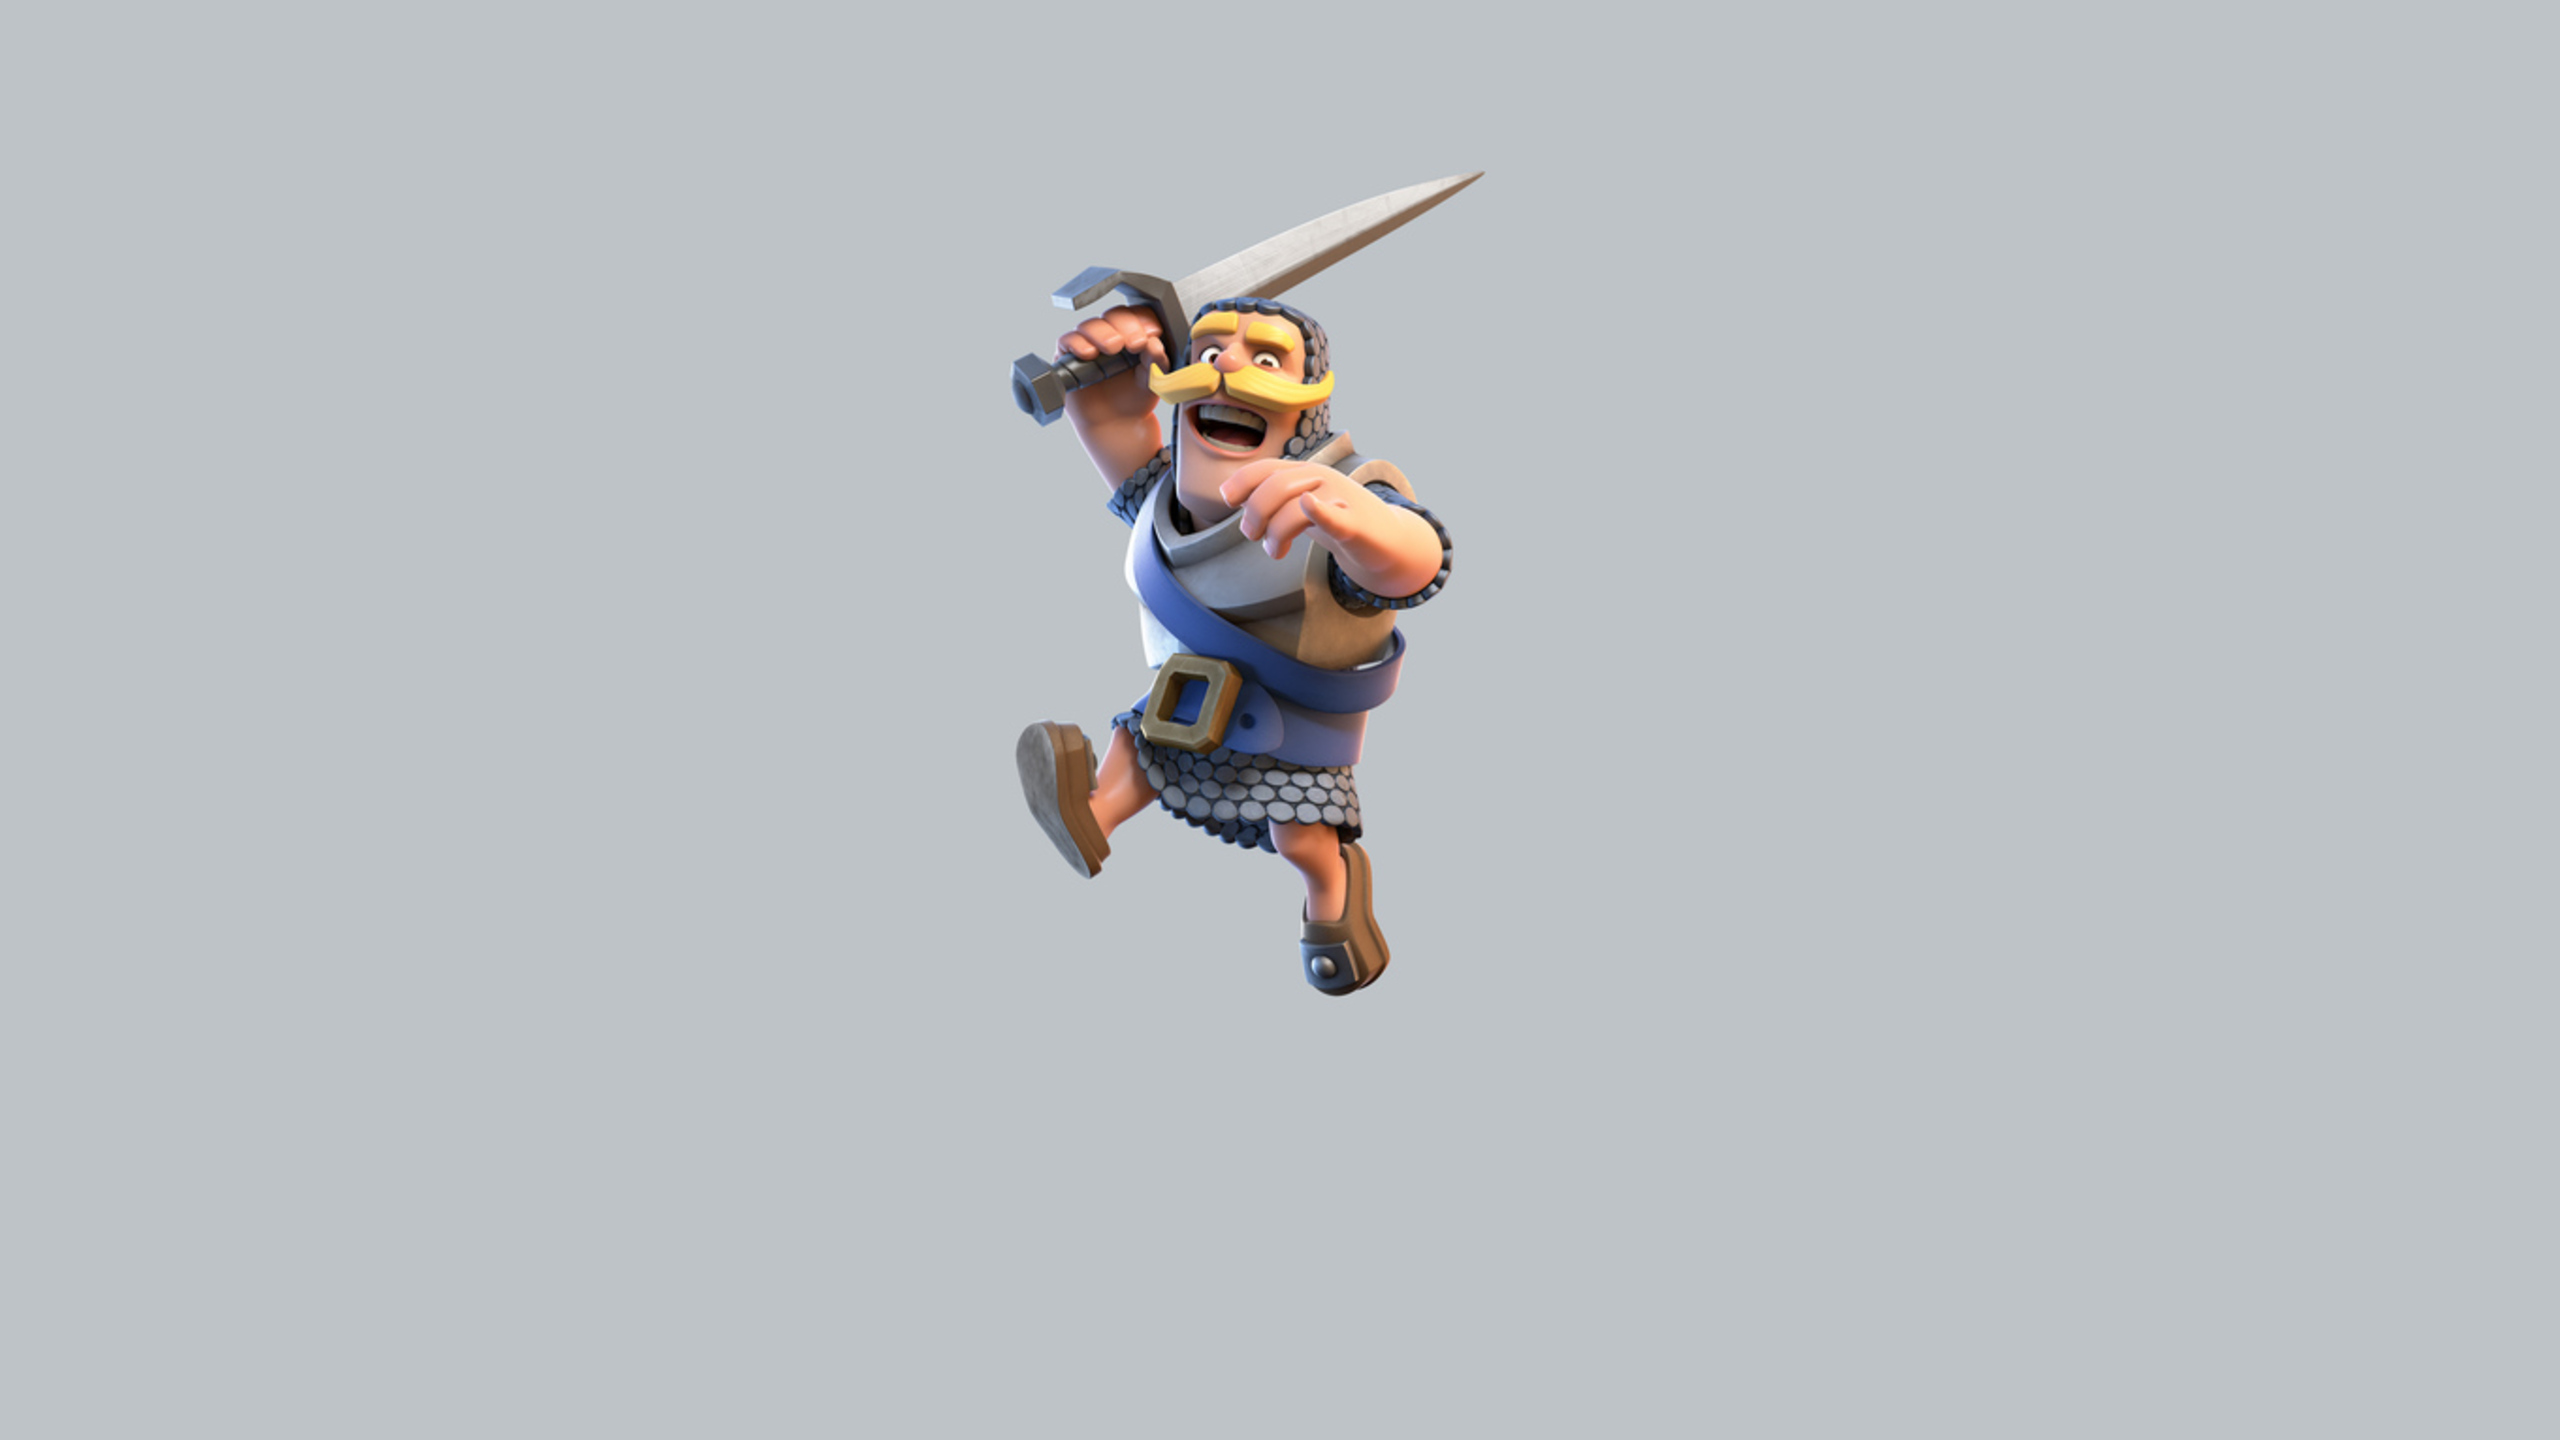 2560x1440 clash royale knight 1440p resolution hd 4k wallpapers images backgrounds photos and - Clash royale 2560x1440 ...